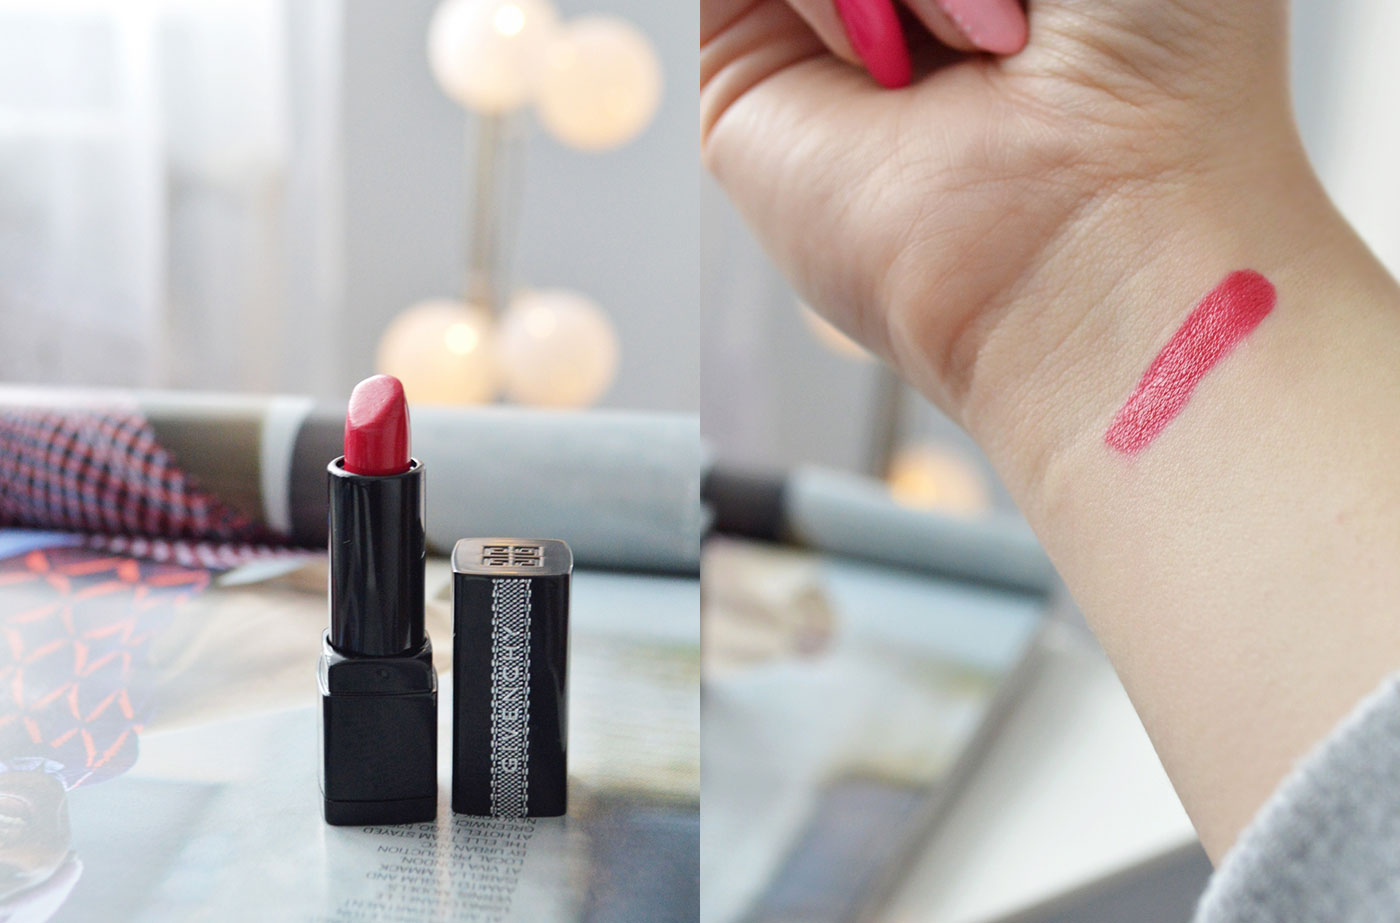 Rouge interdit Givenchy Fuchsia in-the-know